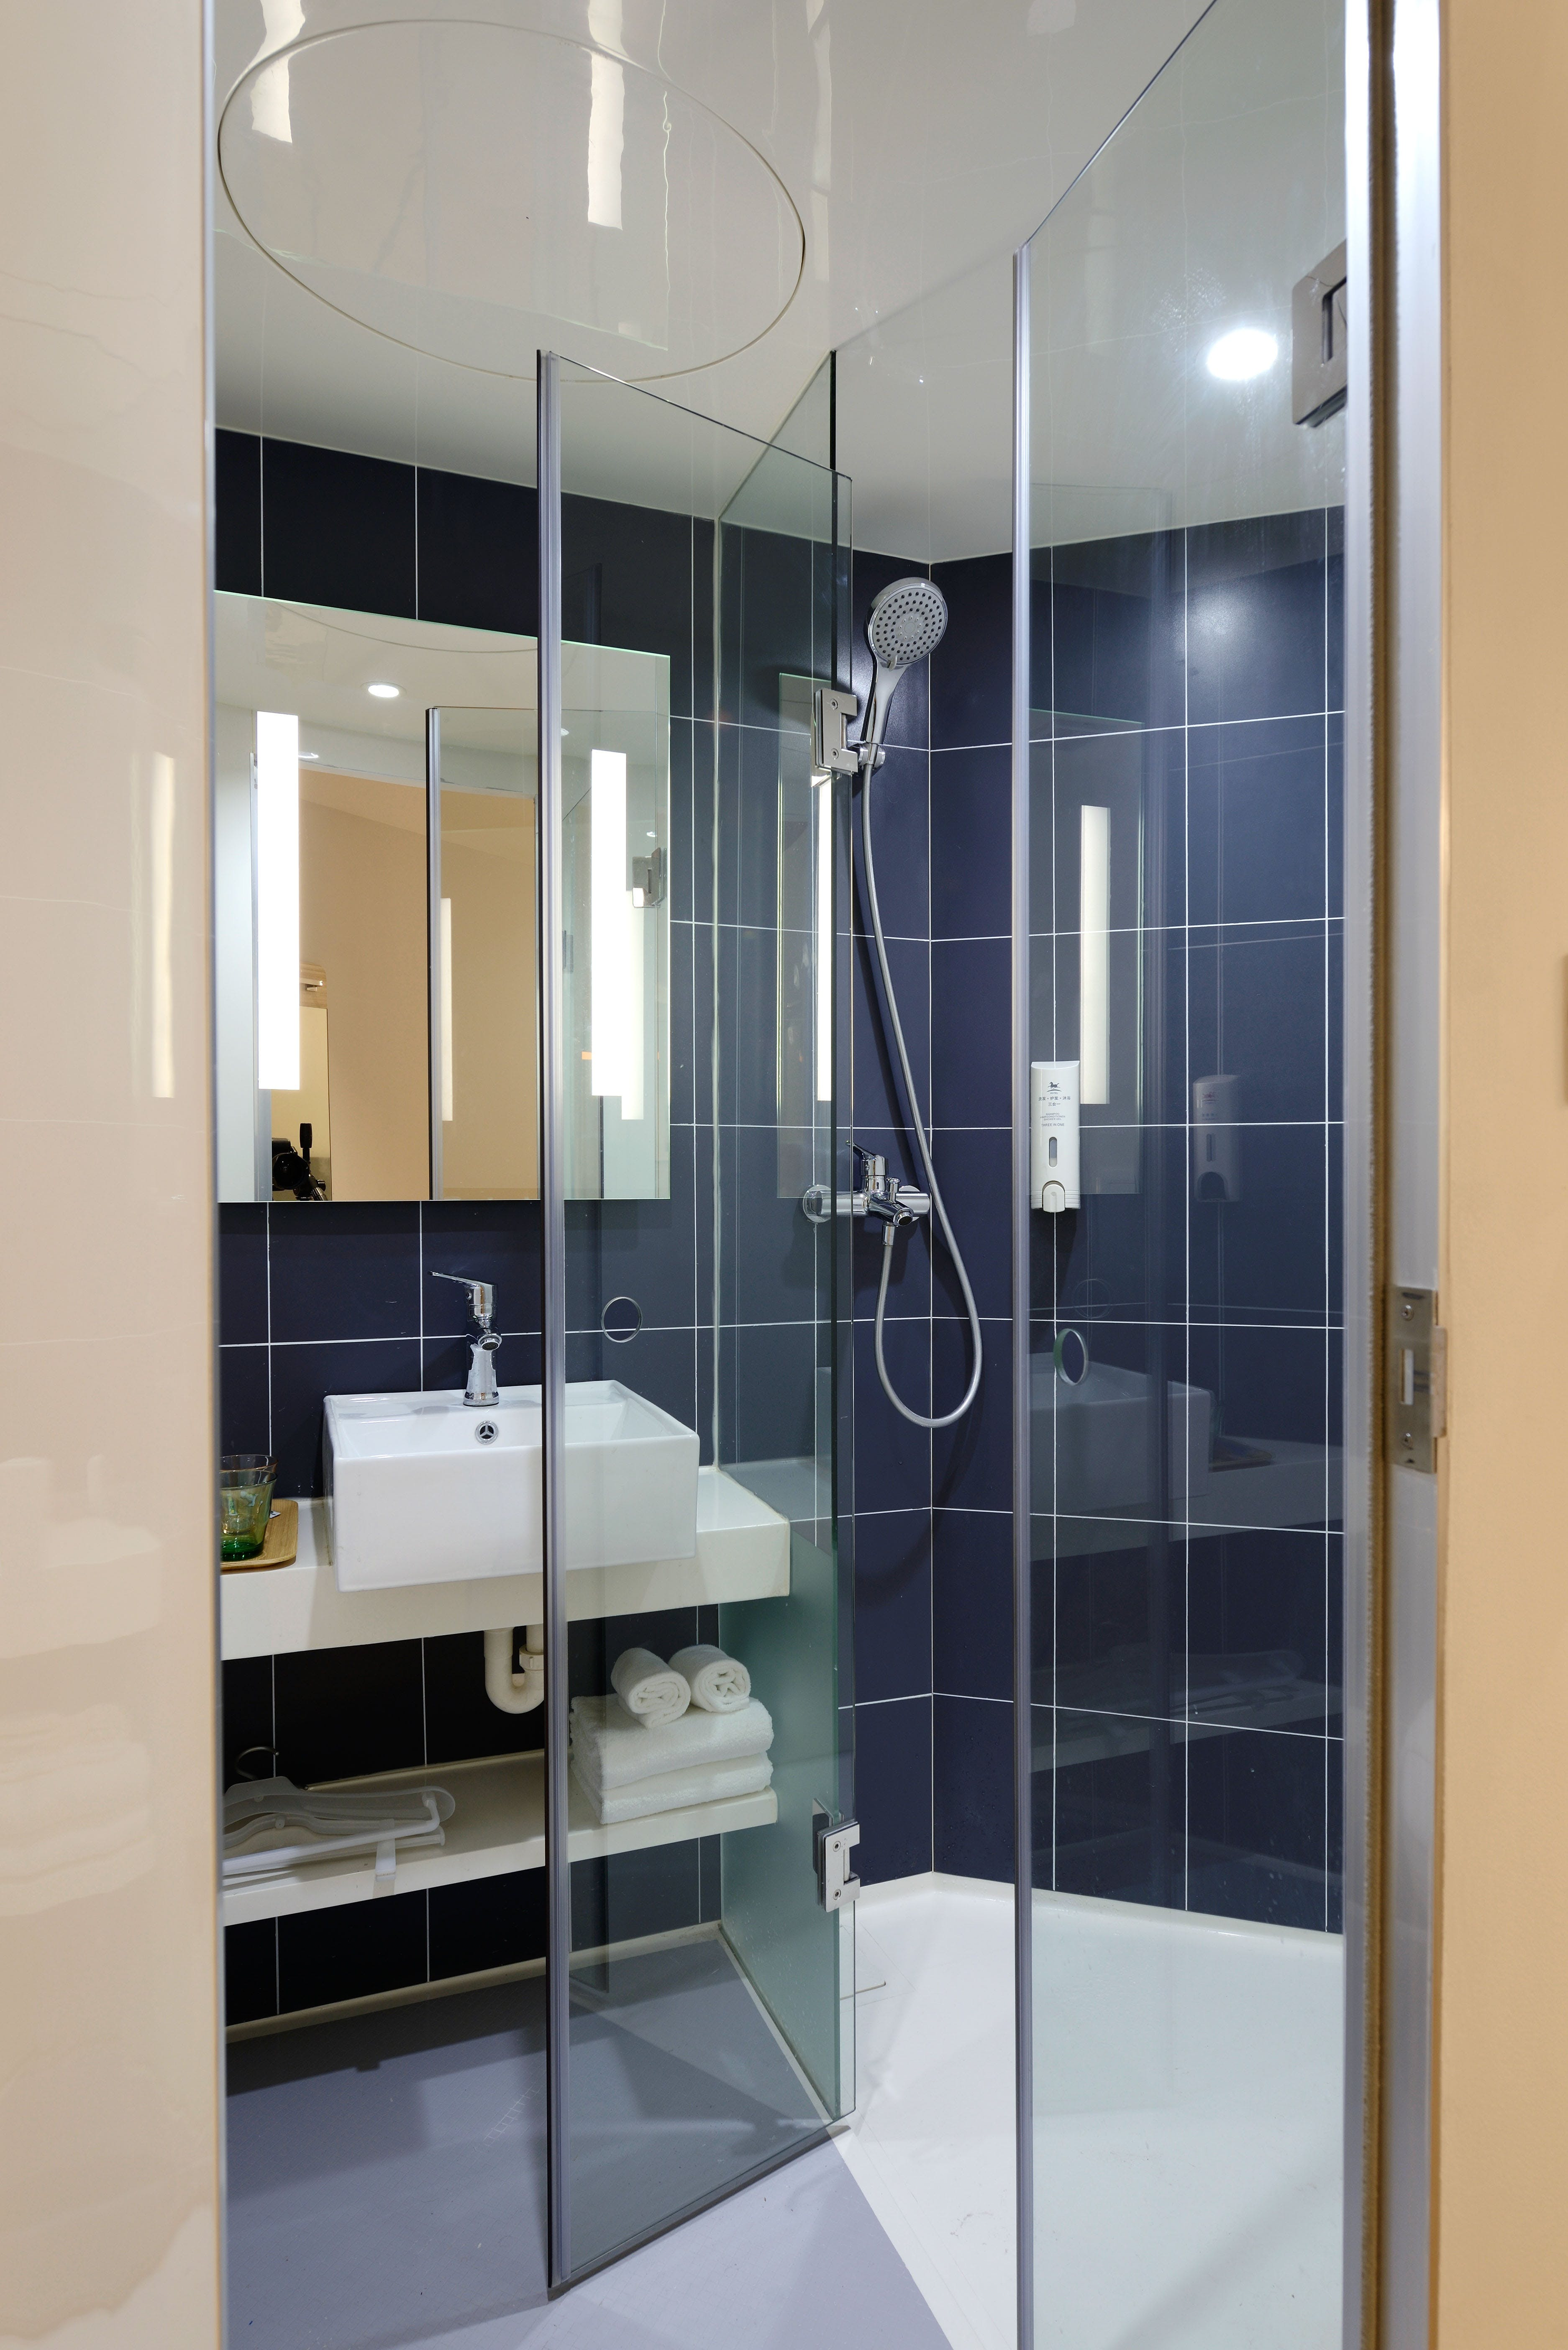 Your New Bathroom Remodel Is One Reputable Contractor Away